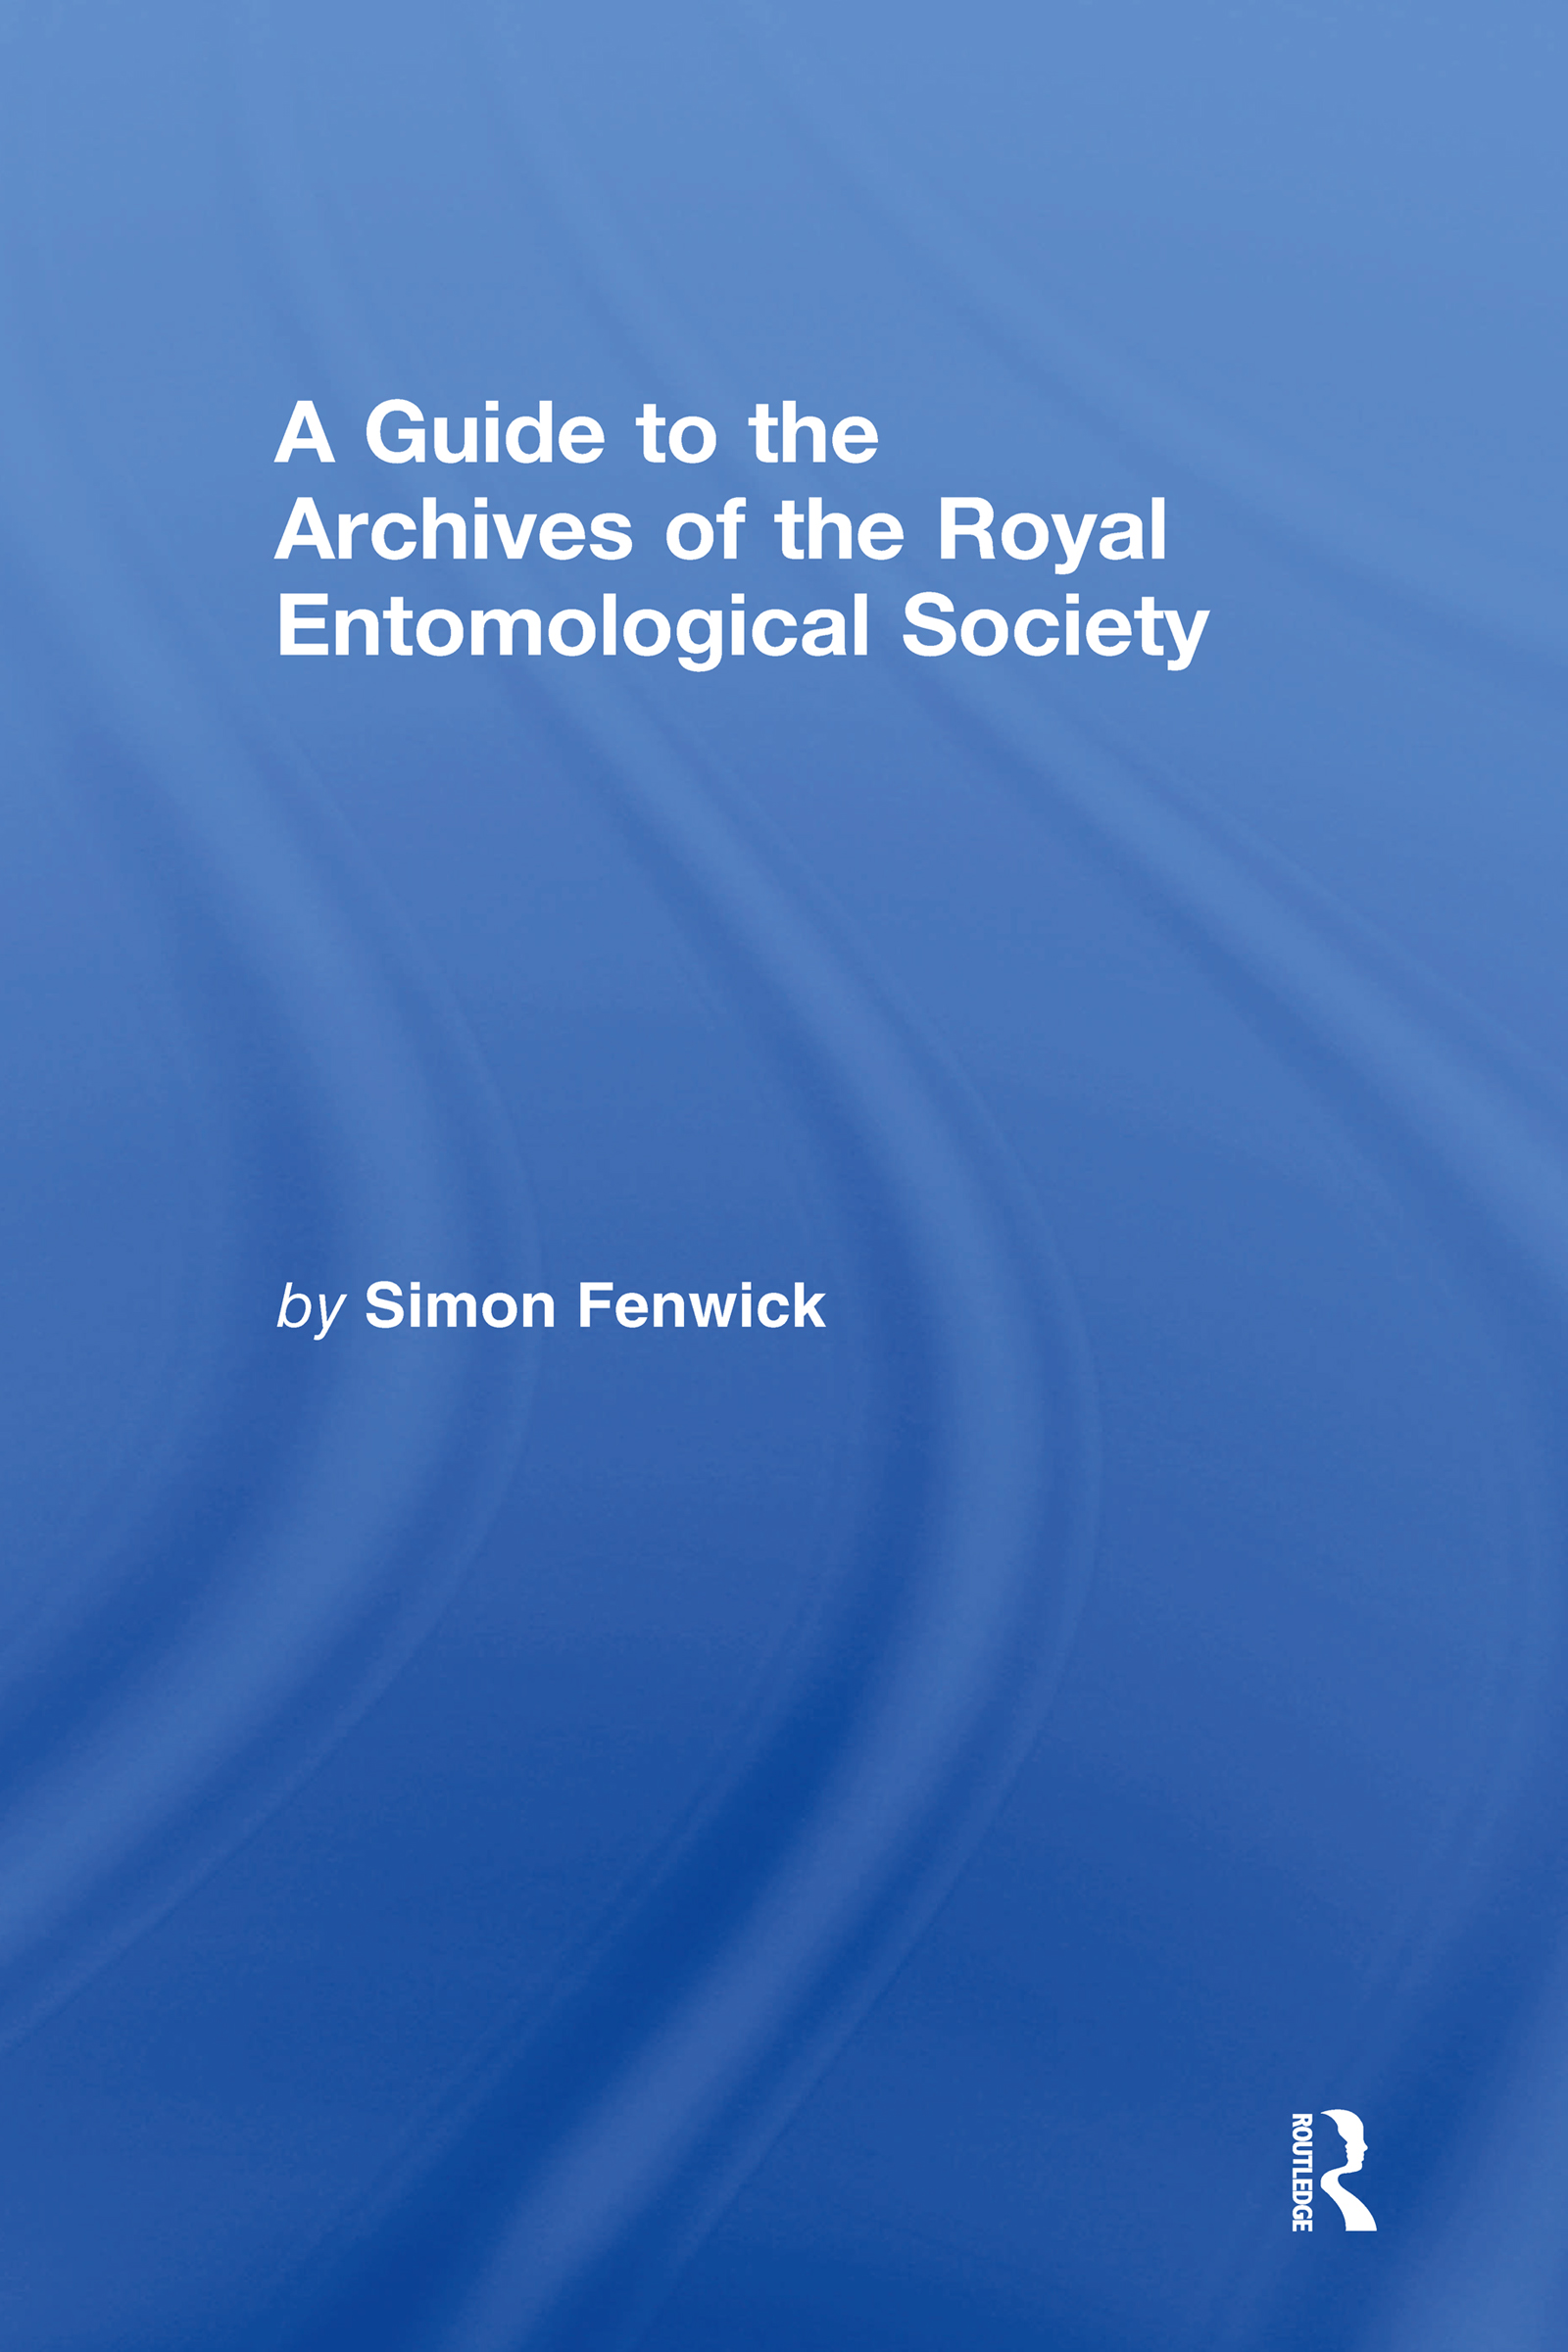 A Guide to the Archives of the Royal Entomological Society